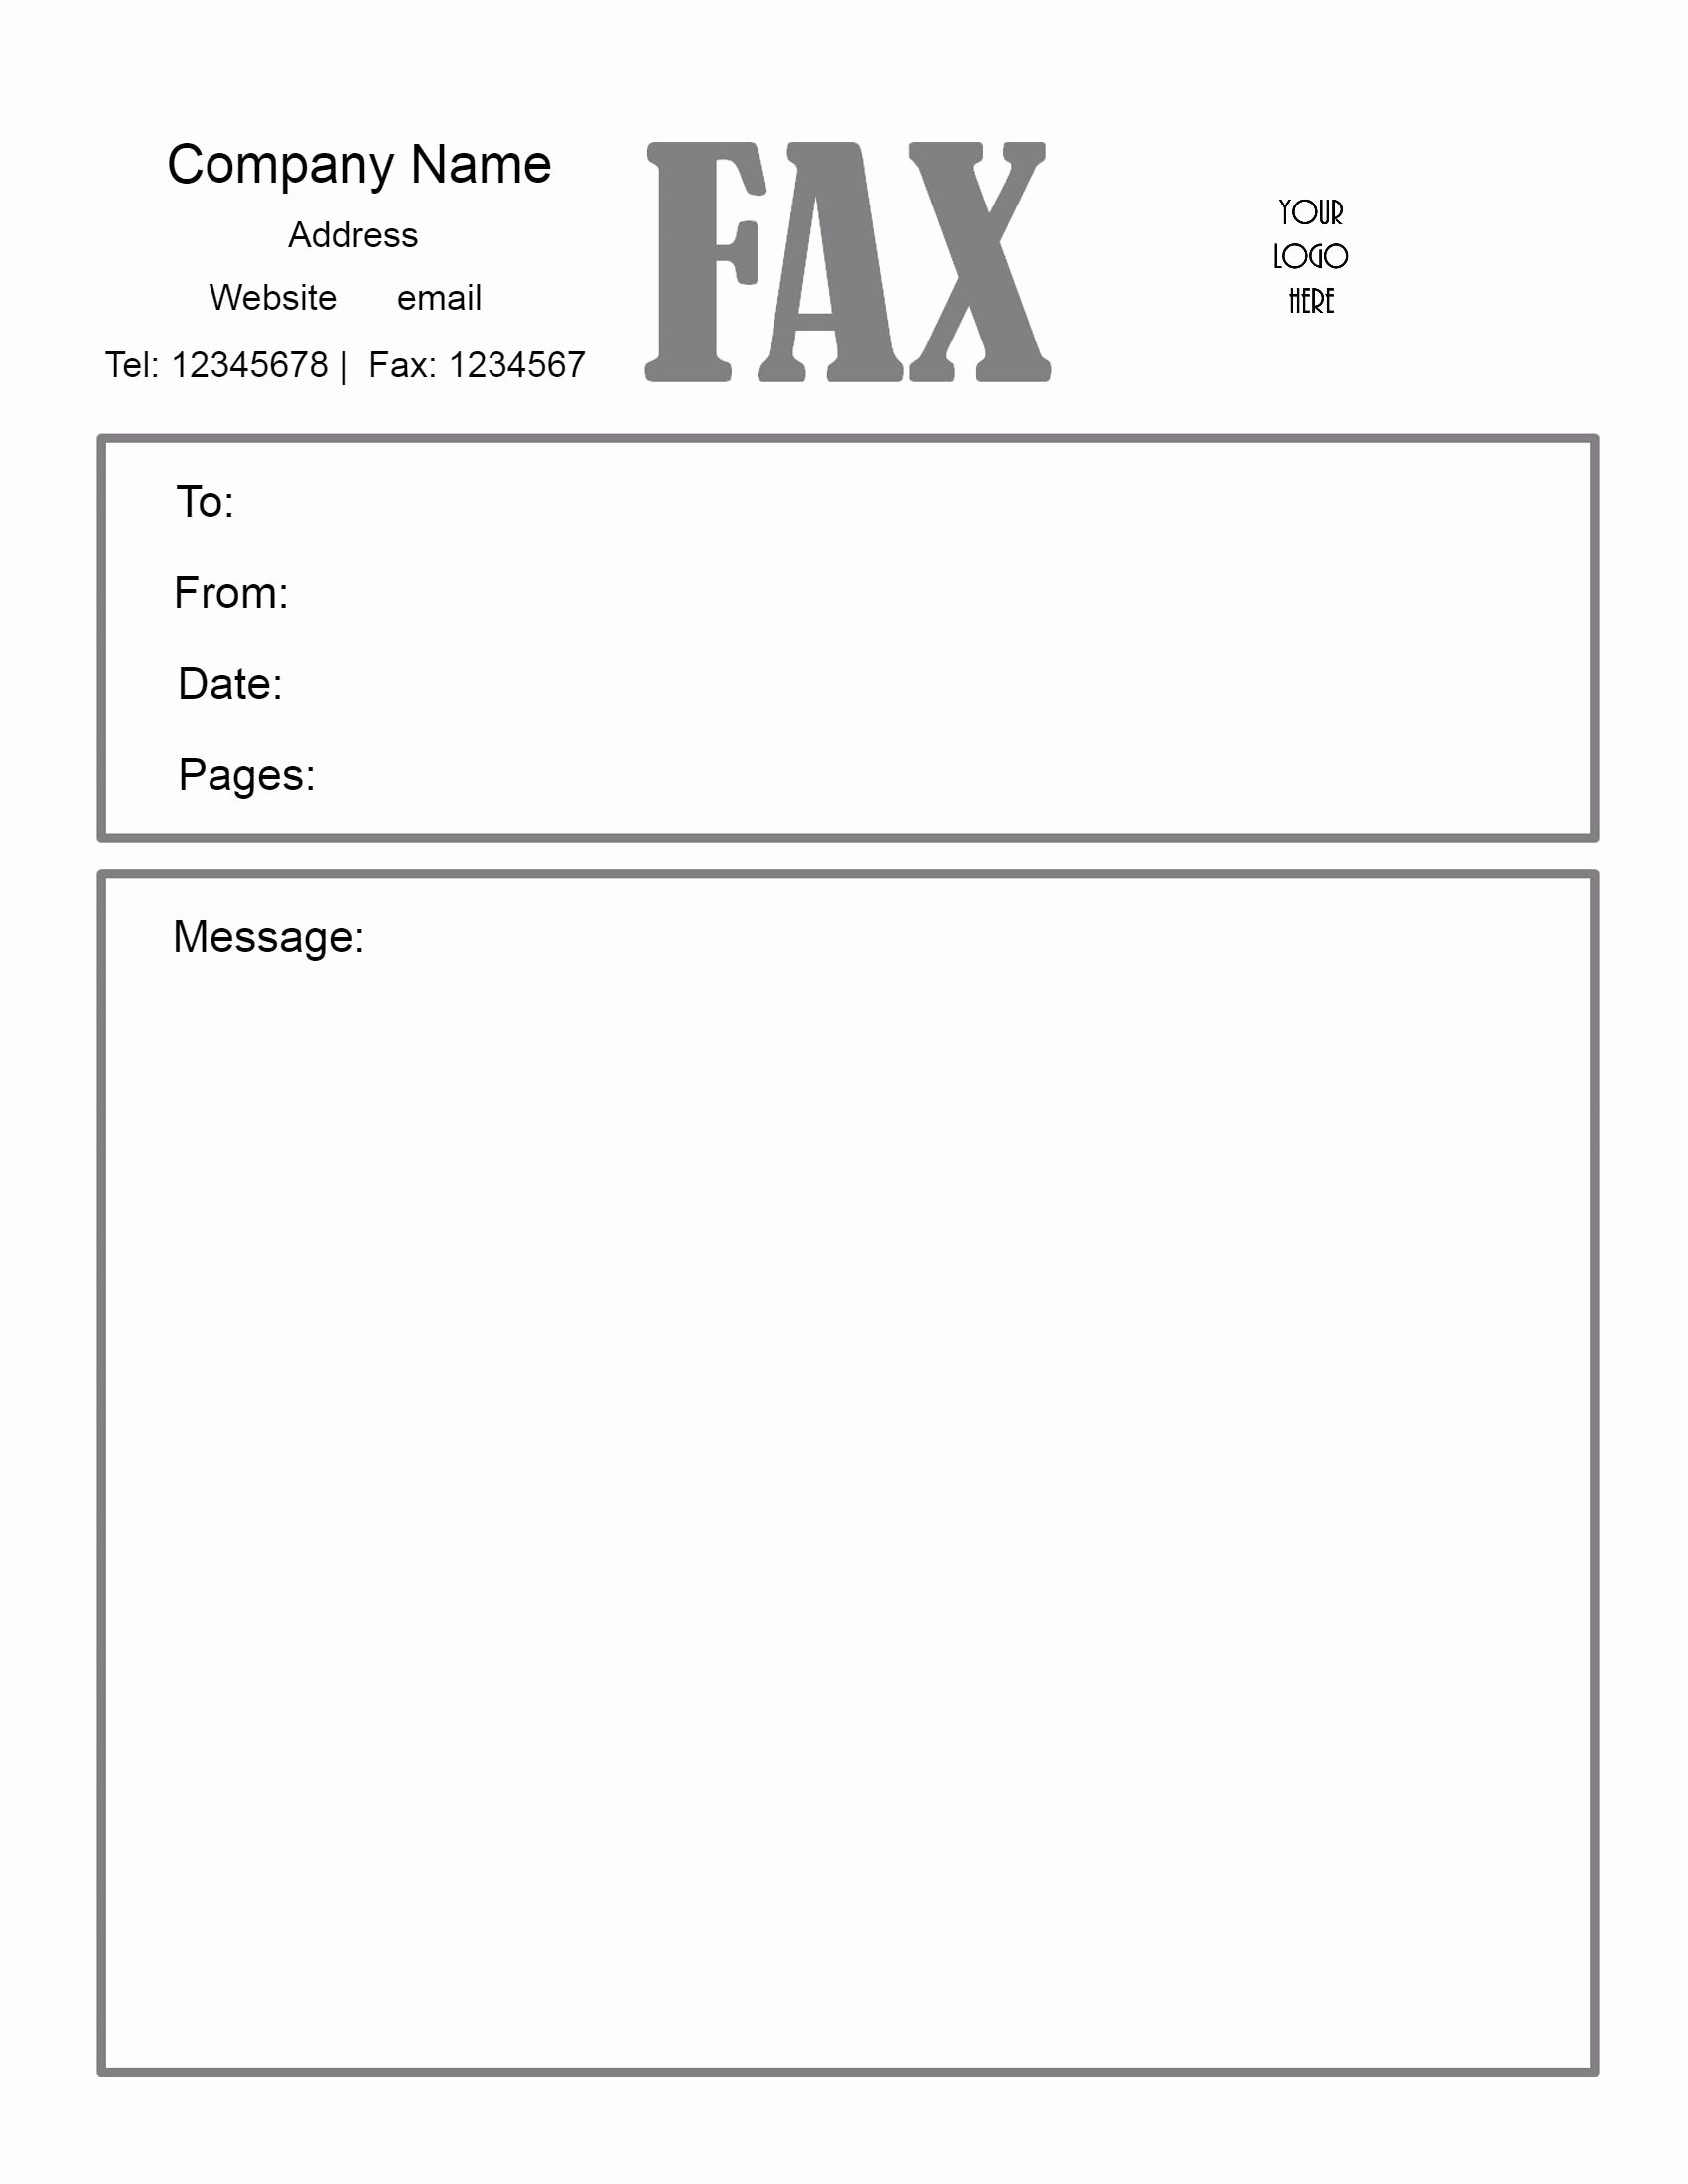 Fax Cover Sheet Printable Free Inspirational Fax Cover Sheet – Download Fax Cover Sheet Fax Cover